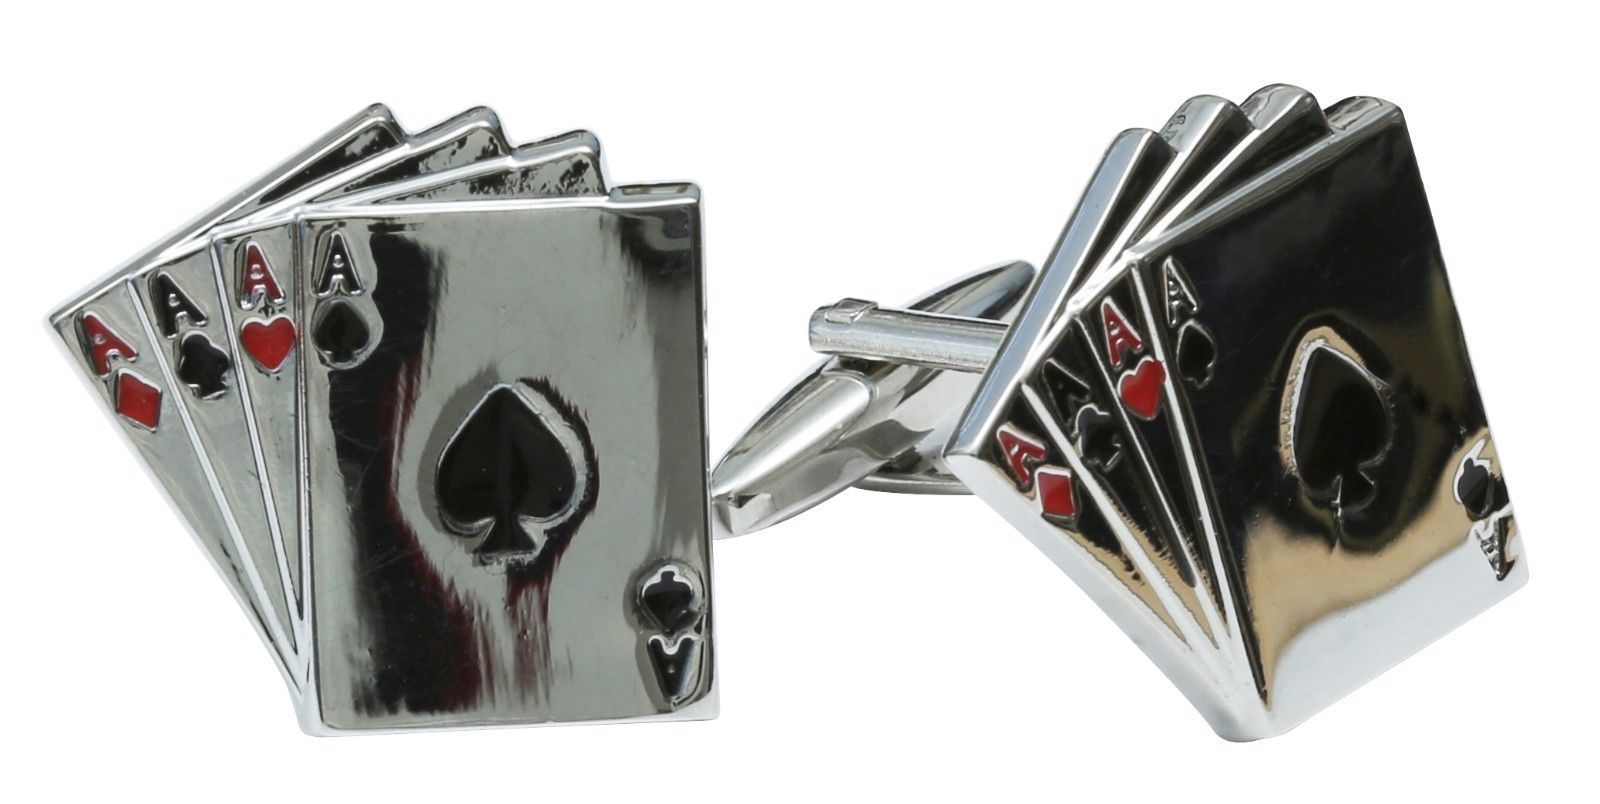 Rockabilly Retro Cufflinks Bombs Anchors Luck Aces Skull Guitar Route 66 Wrench